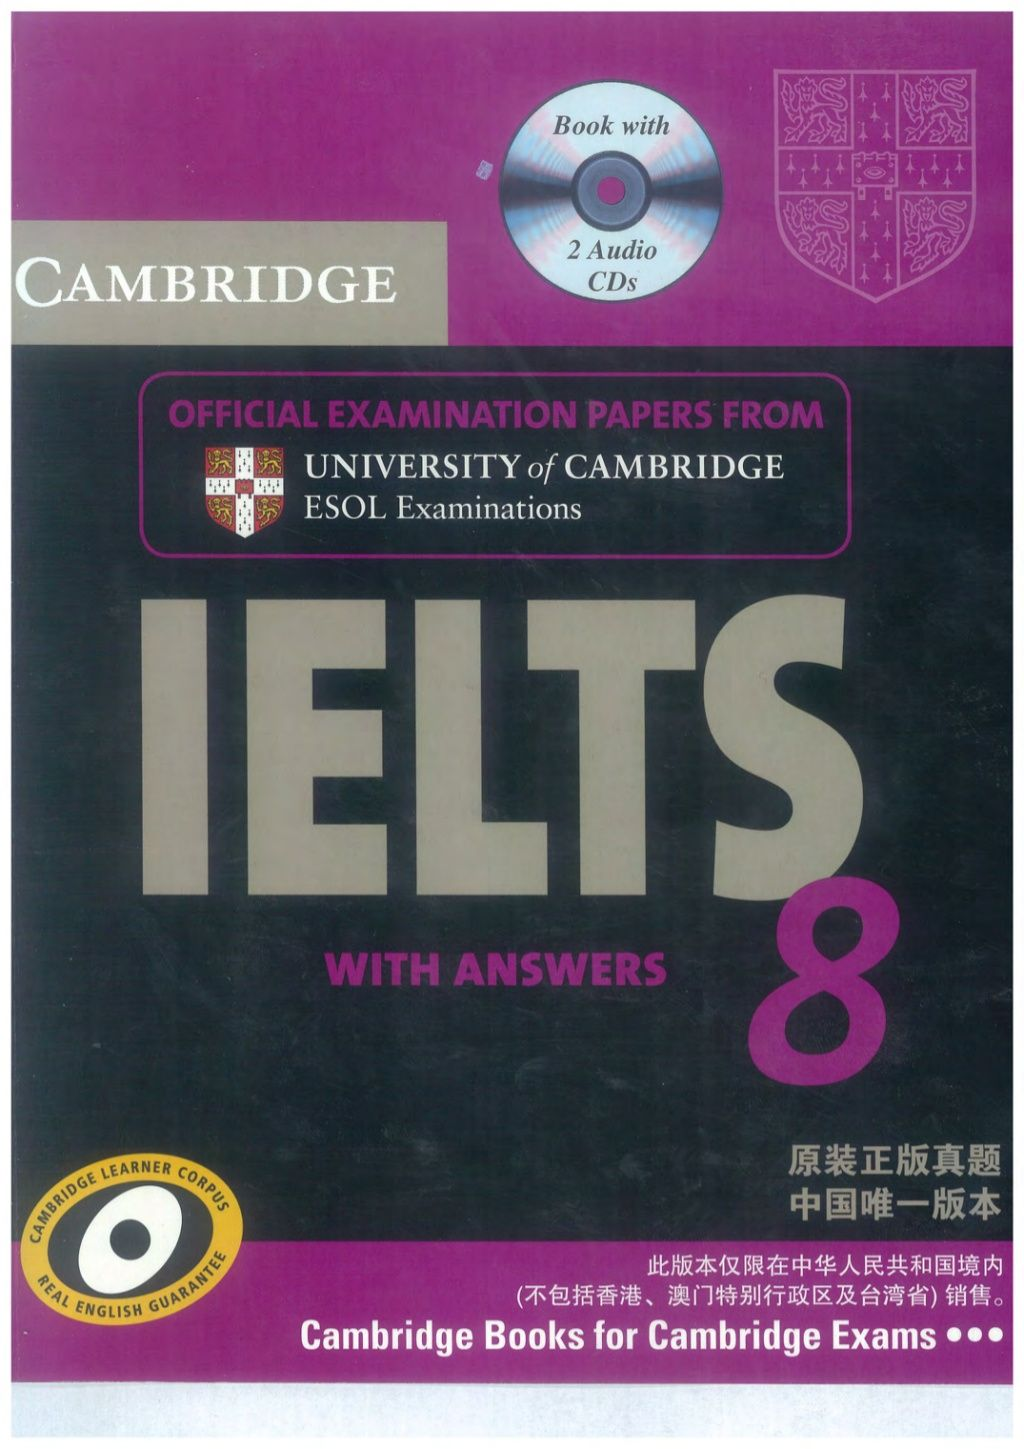 cambridge-ielts-8-self-study-pack-students-book-with-answers-and-audio-c-ds-2  by anchonggen via Slideshare